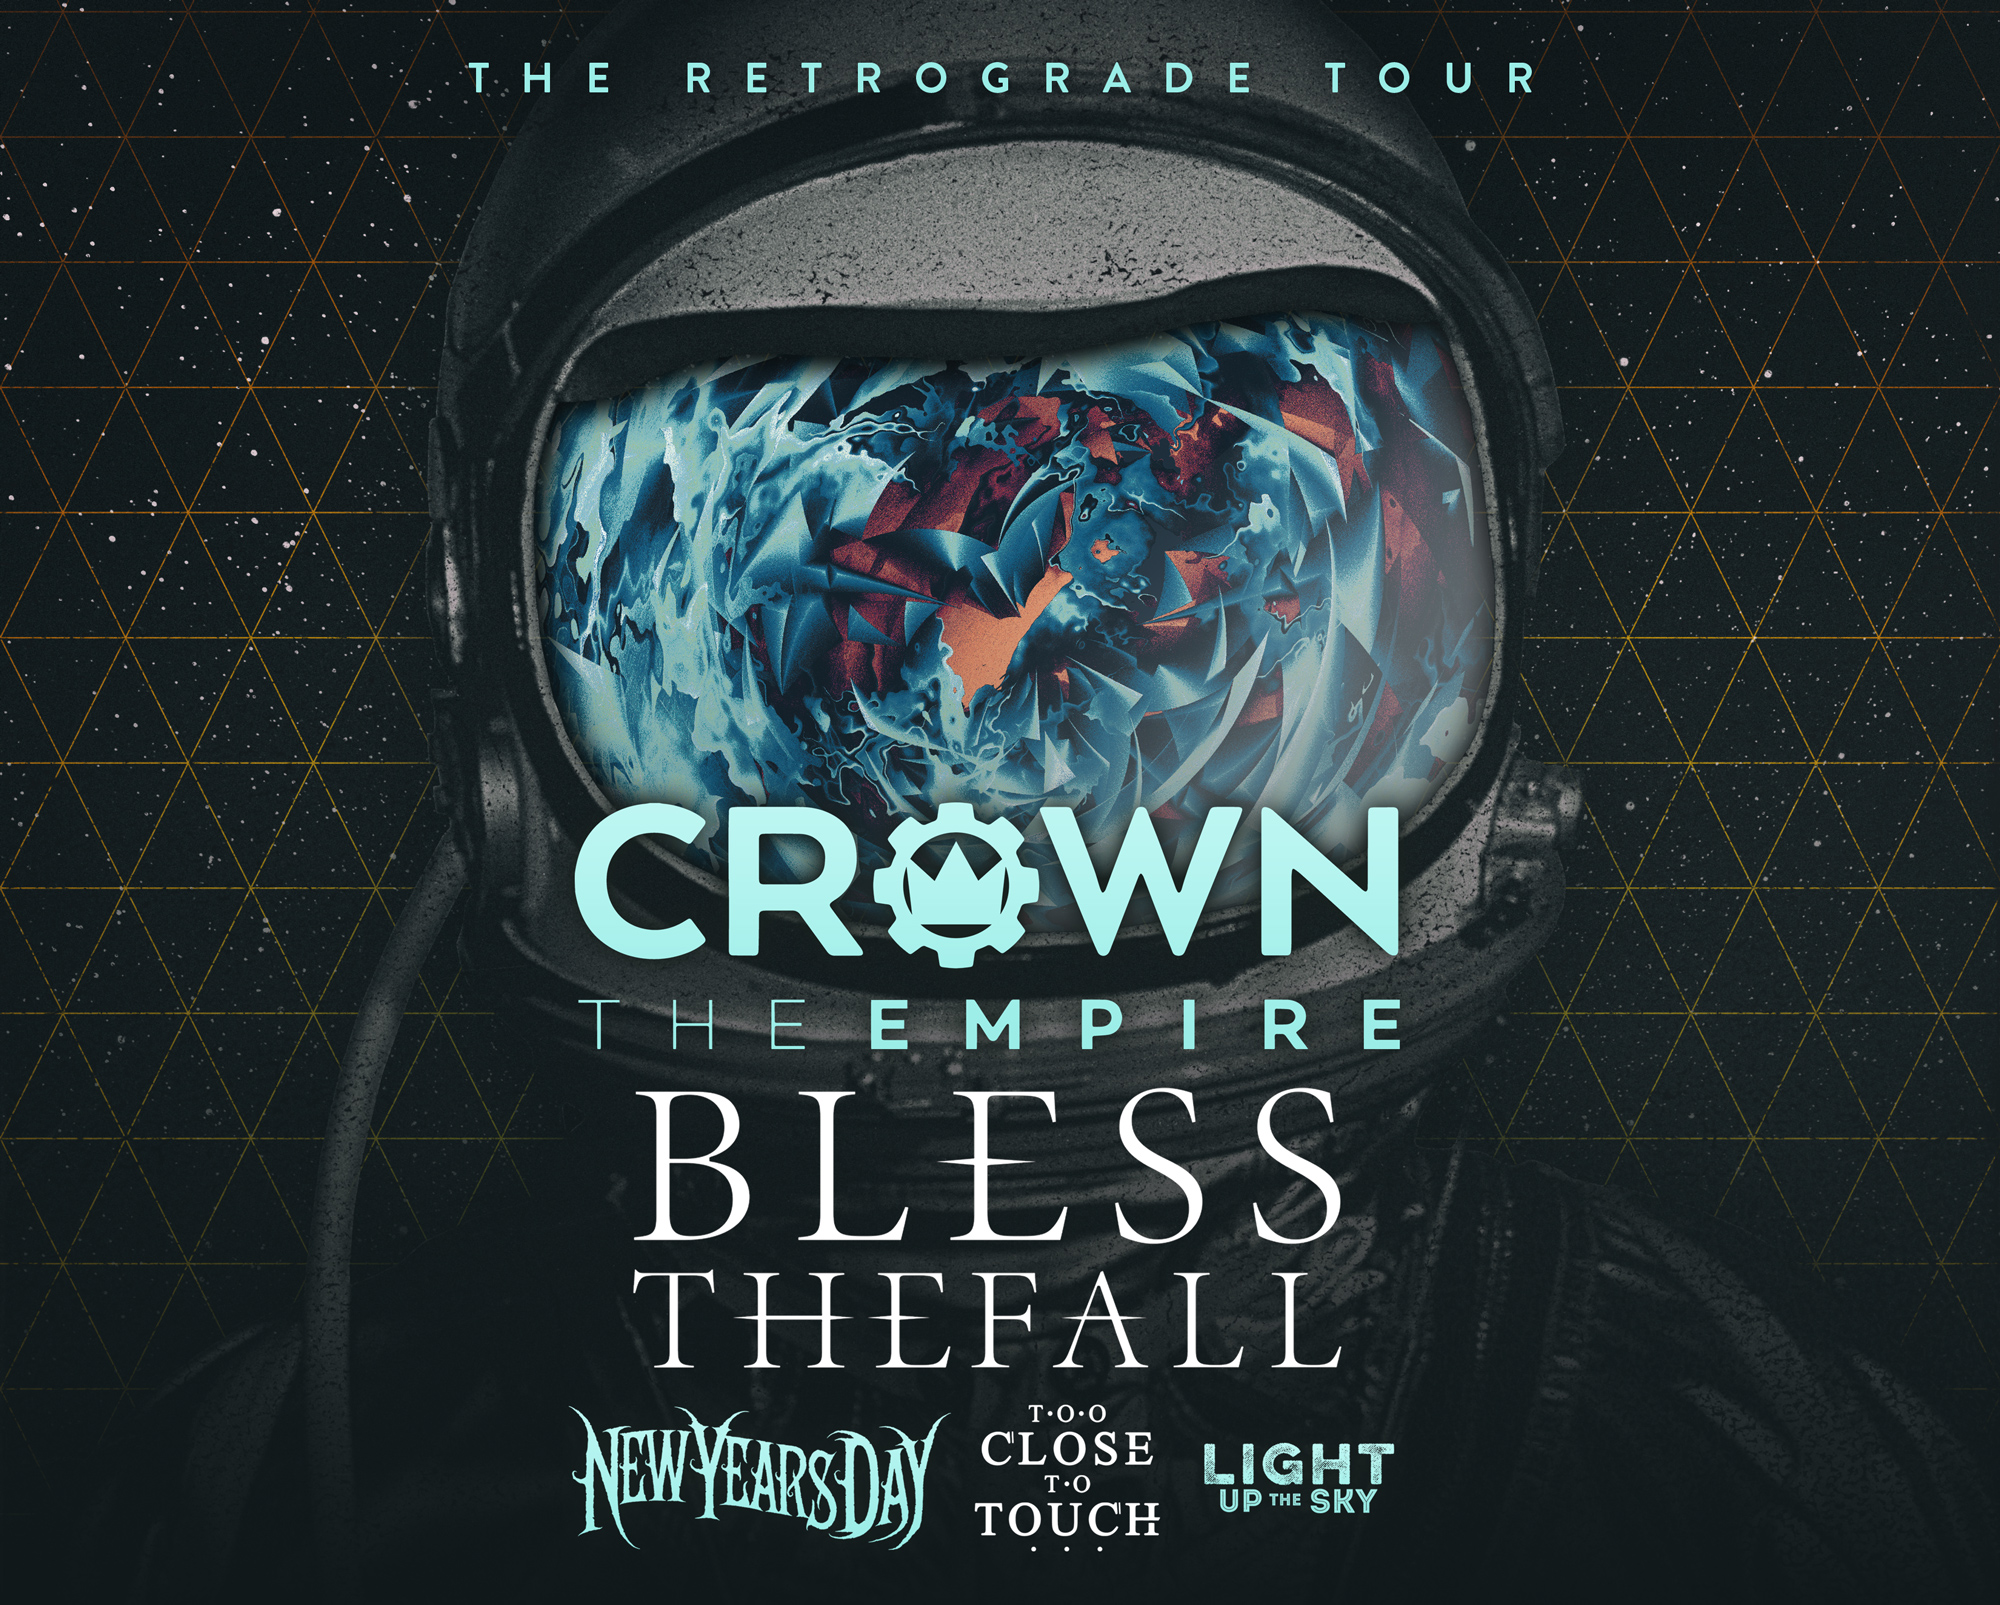 CROWN THE EMPIRE: THE RETROGRADE TOUR WITH BLESSTHEFALL * NEW YEARS DAY * TOO CLOSE TO TOUCH * LIGHT UP THE SKY